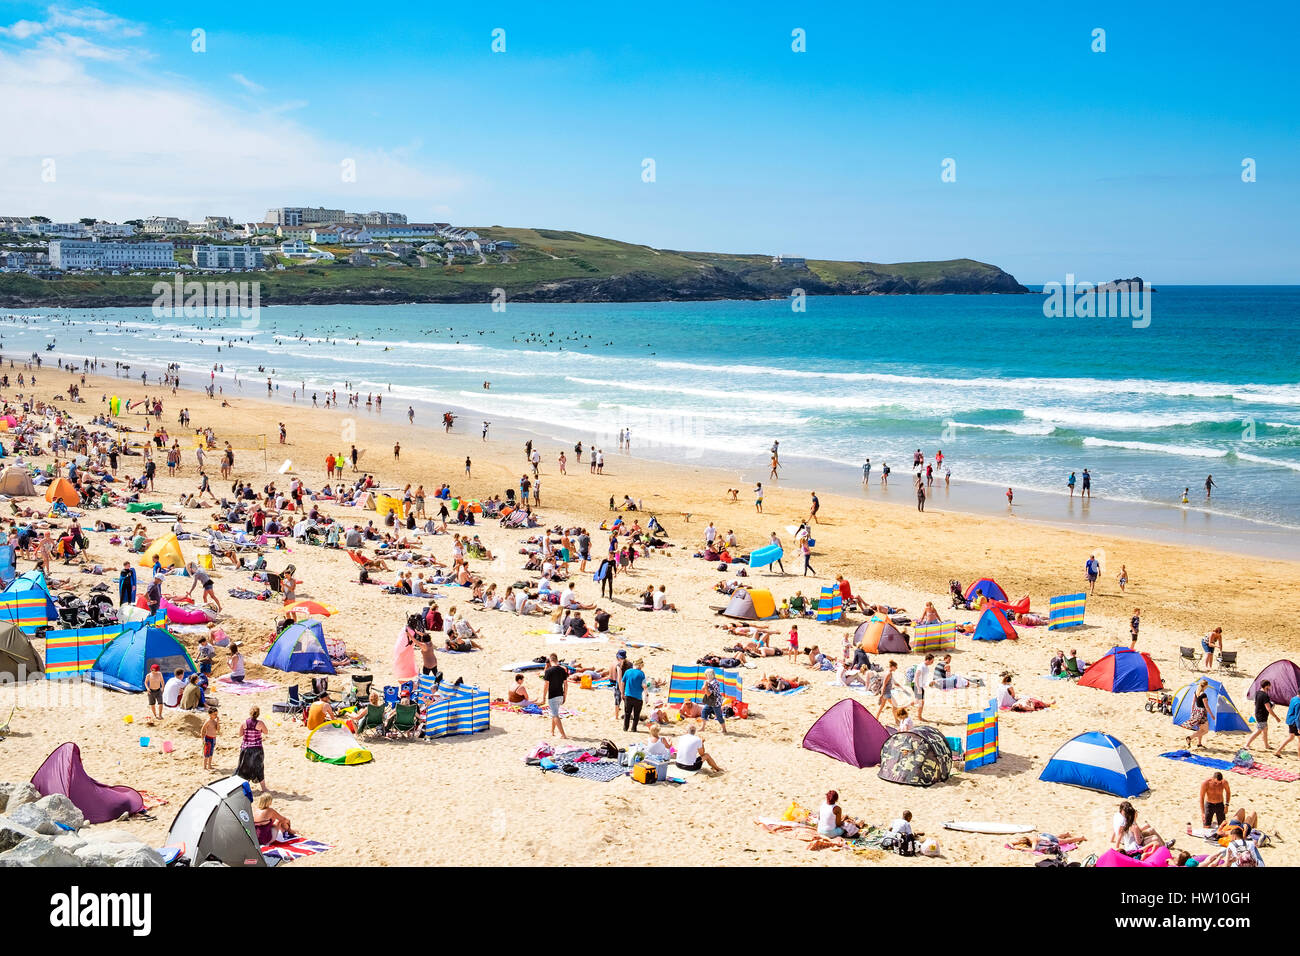 summertime at fistral beach in newquay, cornwall, england, UK. - Stock Image